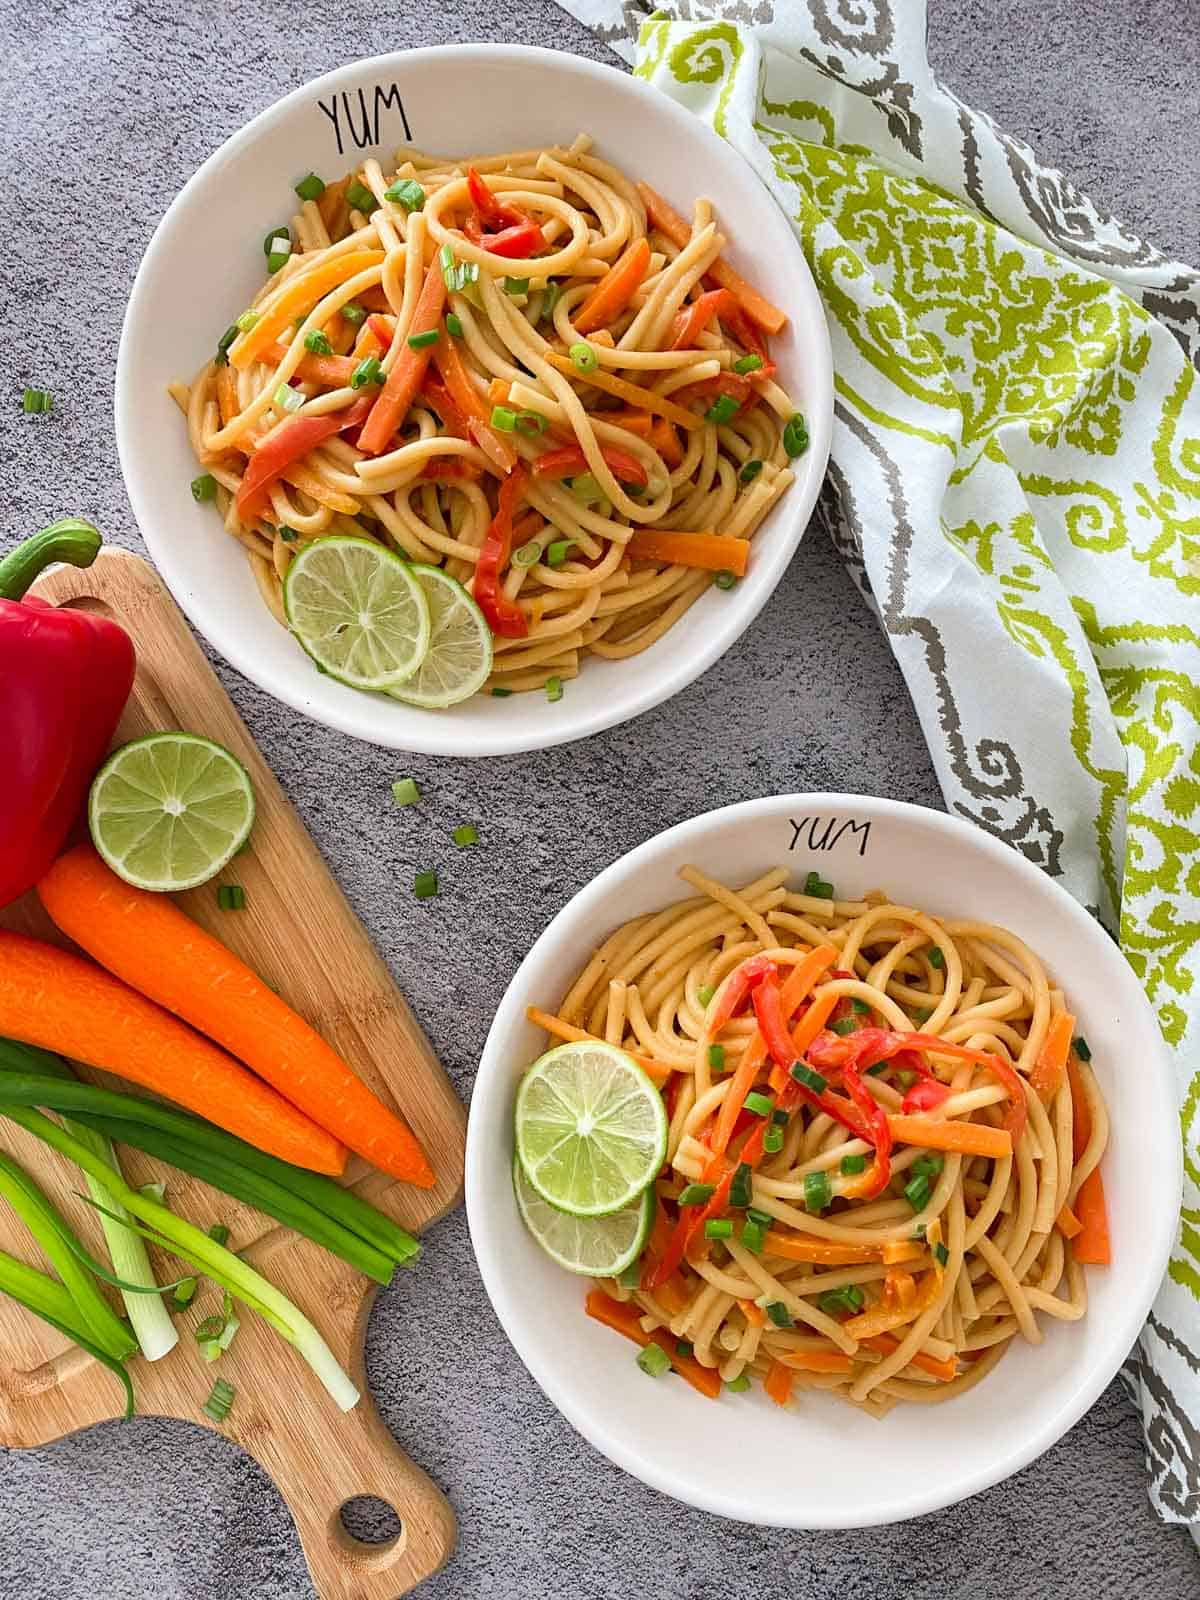 Two bowls of thai peanut noodles with lime and green onion garnish.